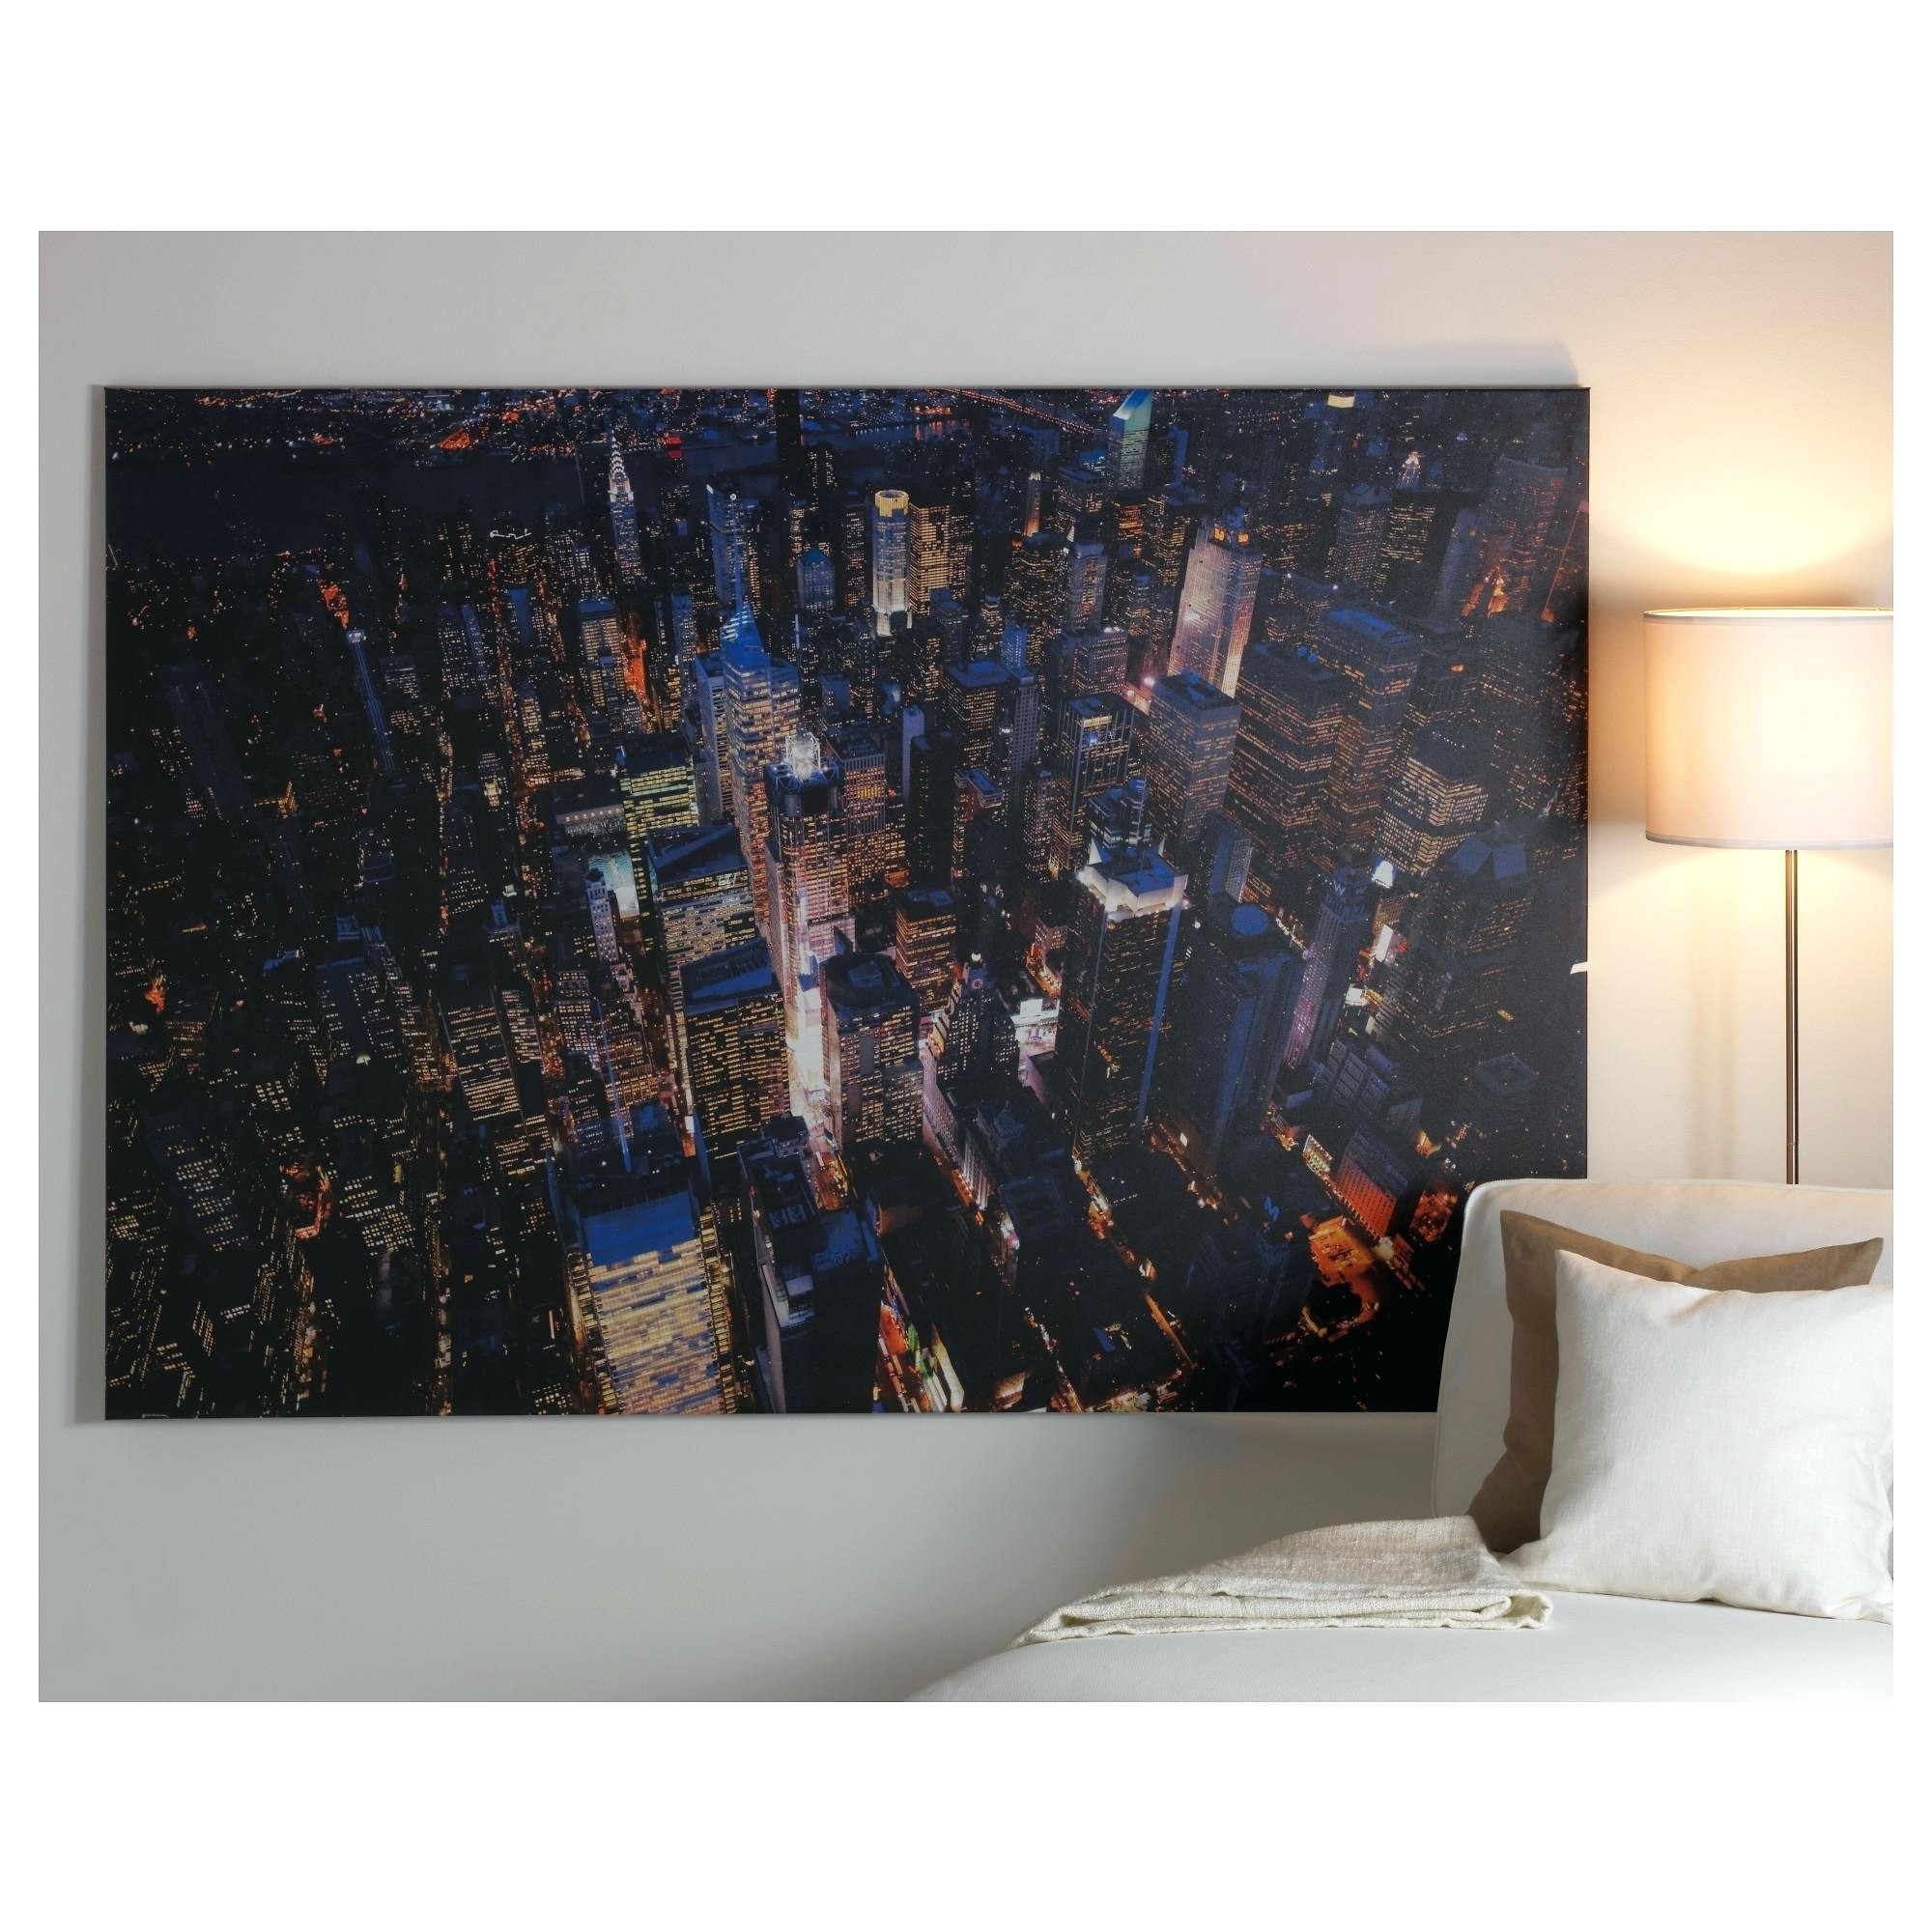 33 Awesome Ikea Wall Art Design Ideas Of Large Canvas Wall Art Uk In Recent Ikea Canvas Wall Art (View 5 of 15)